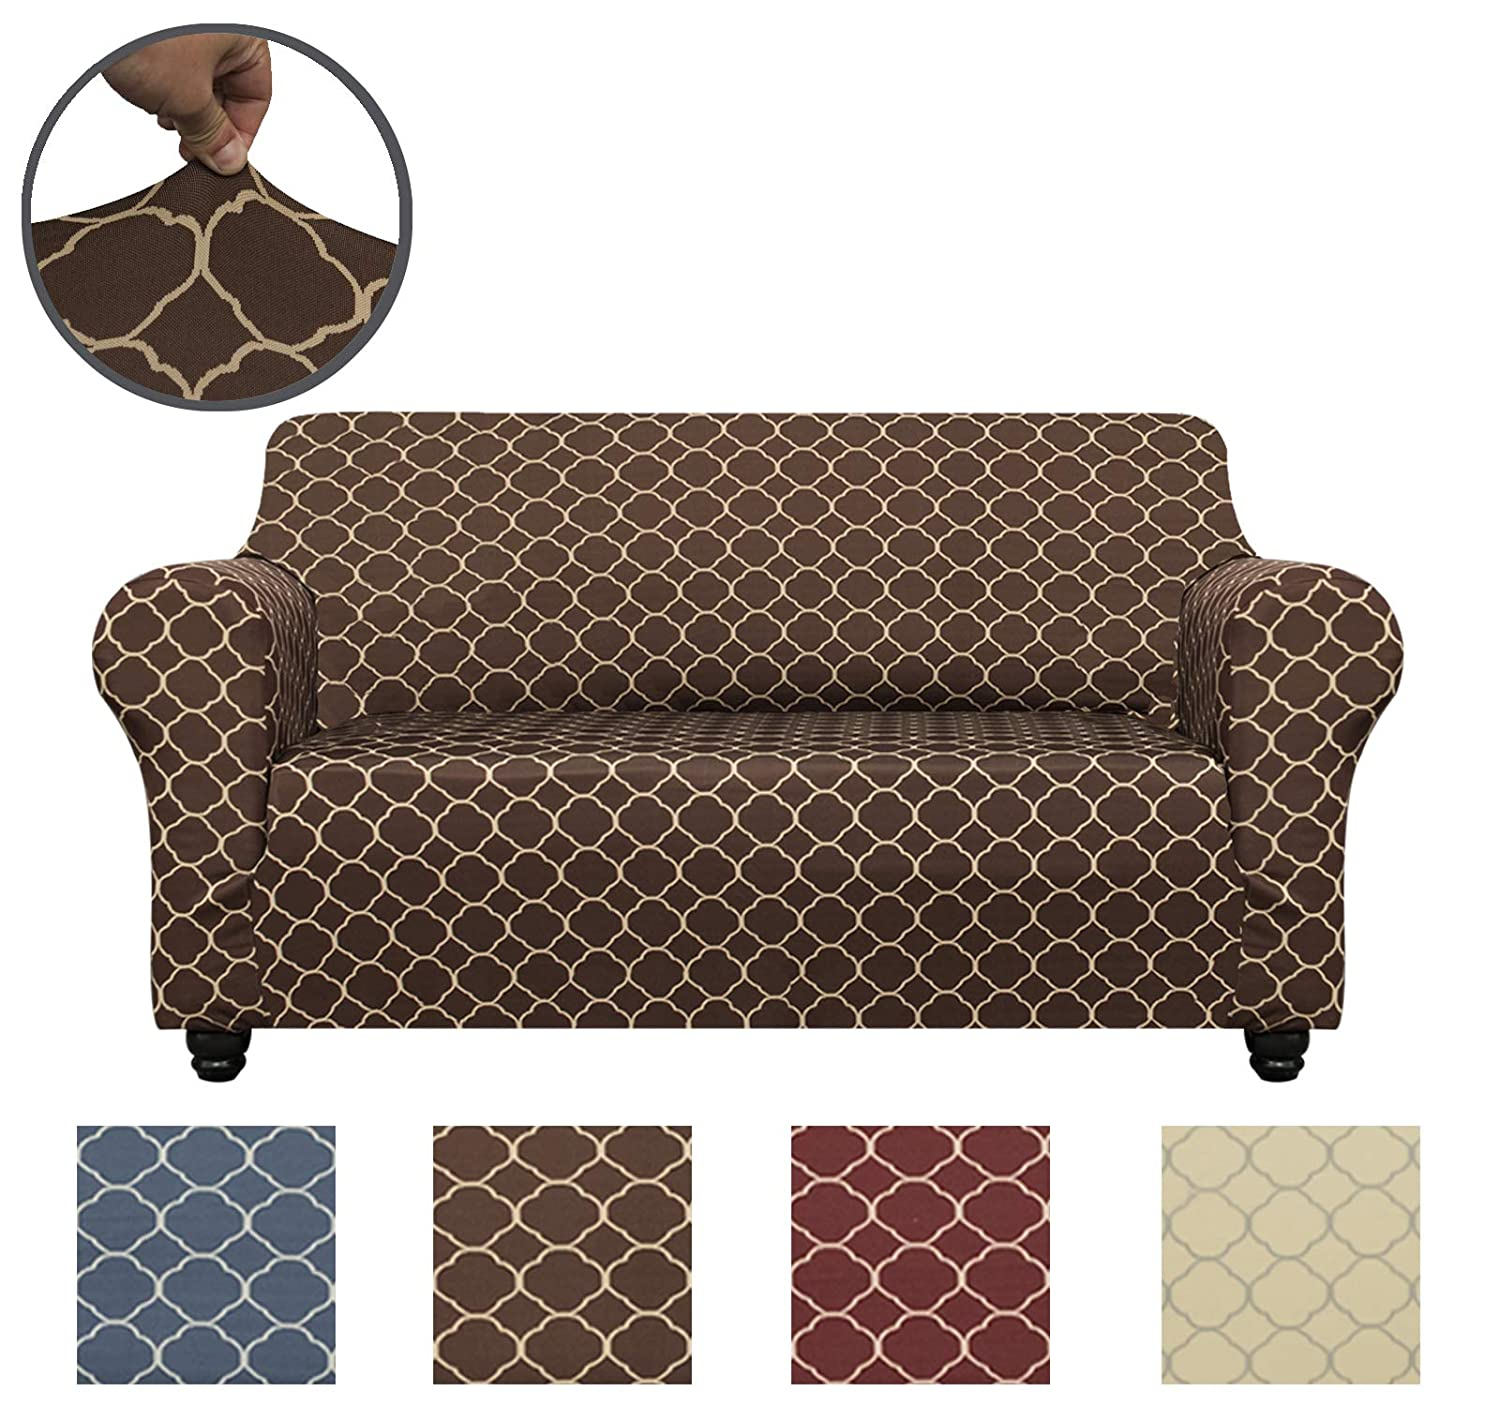 Beige, Loveseat CHHKON 1-Piece Sofa Cover Furniture Protector with High Stretch,Machine Washable